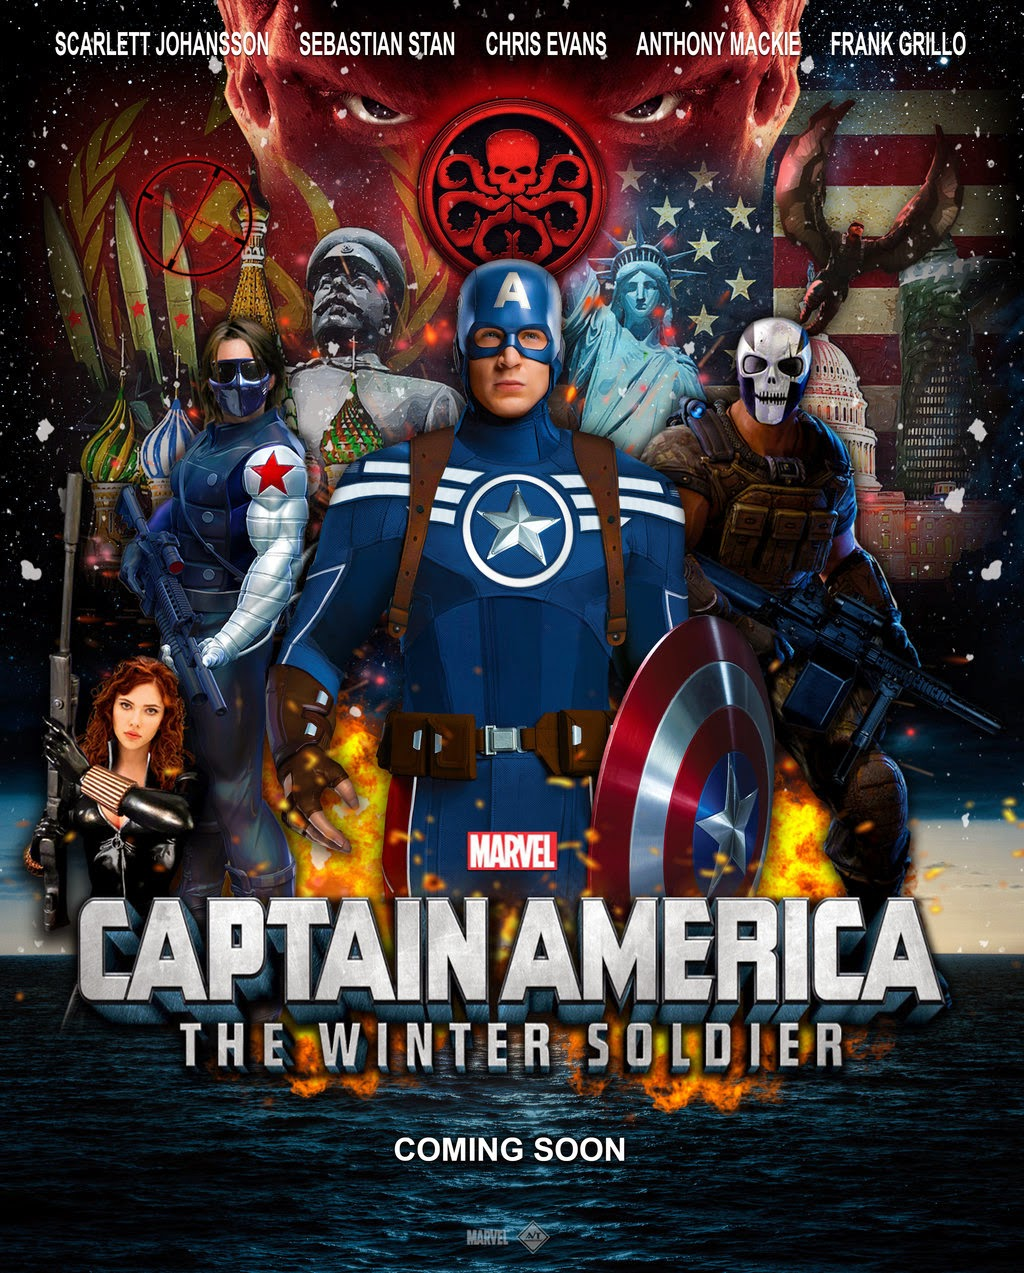 Captain America: The Winter Soldier is a superhero movie MARVEL